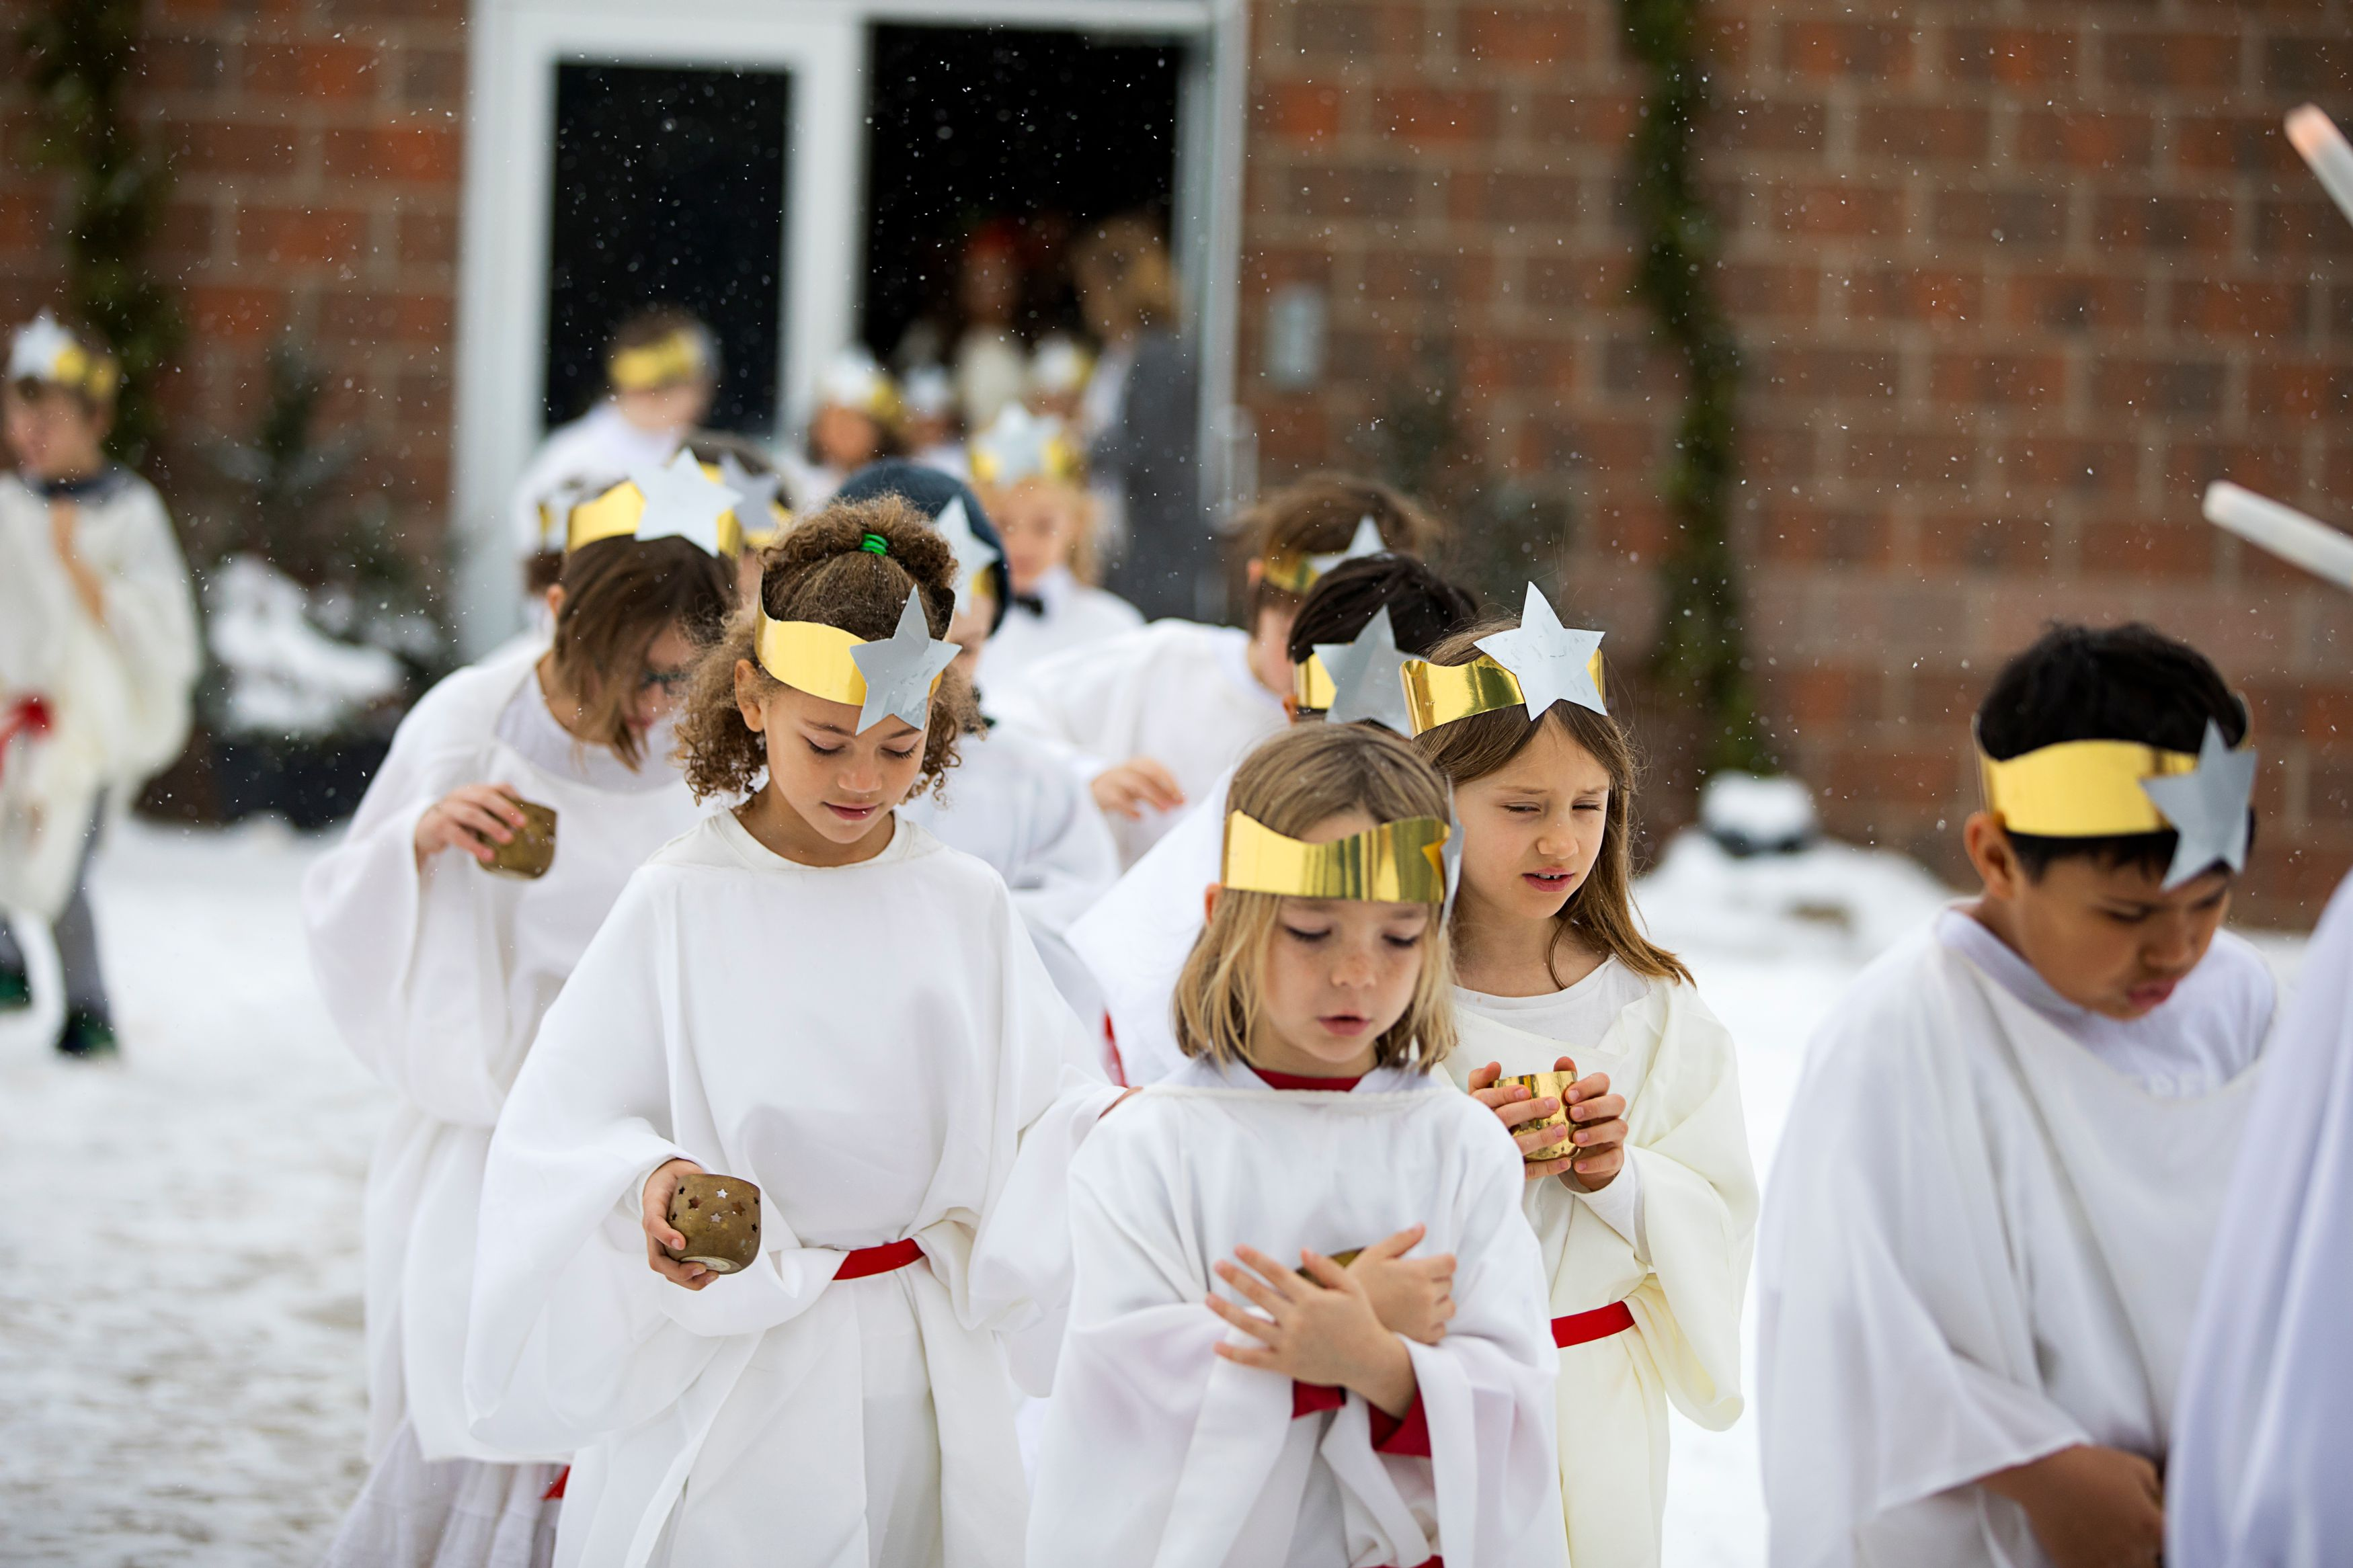 Children wearing gold headbands and white robes